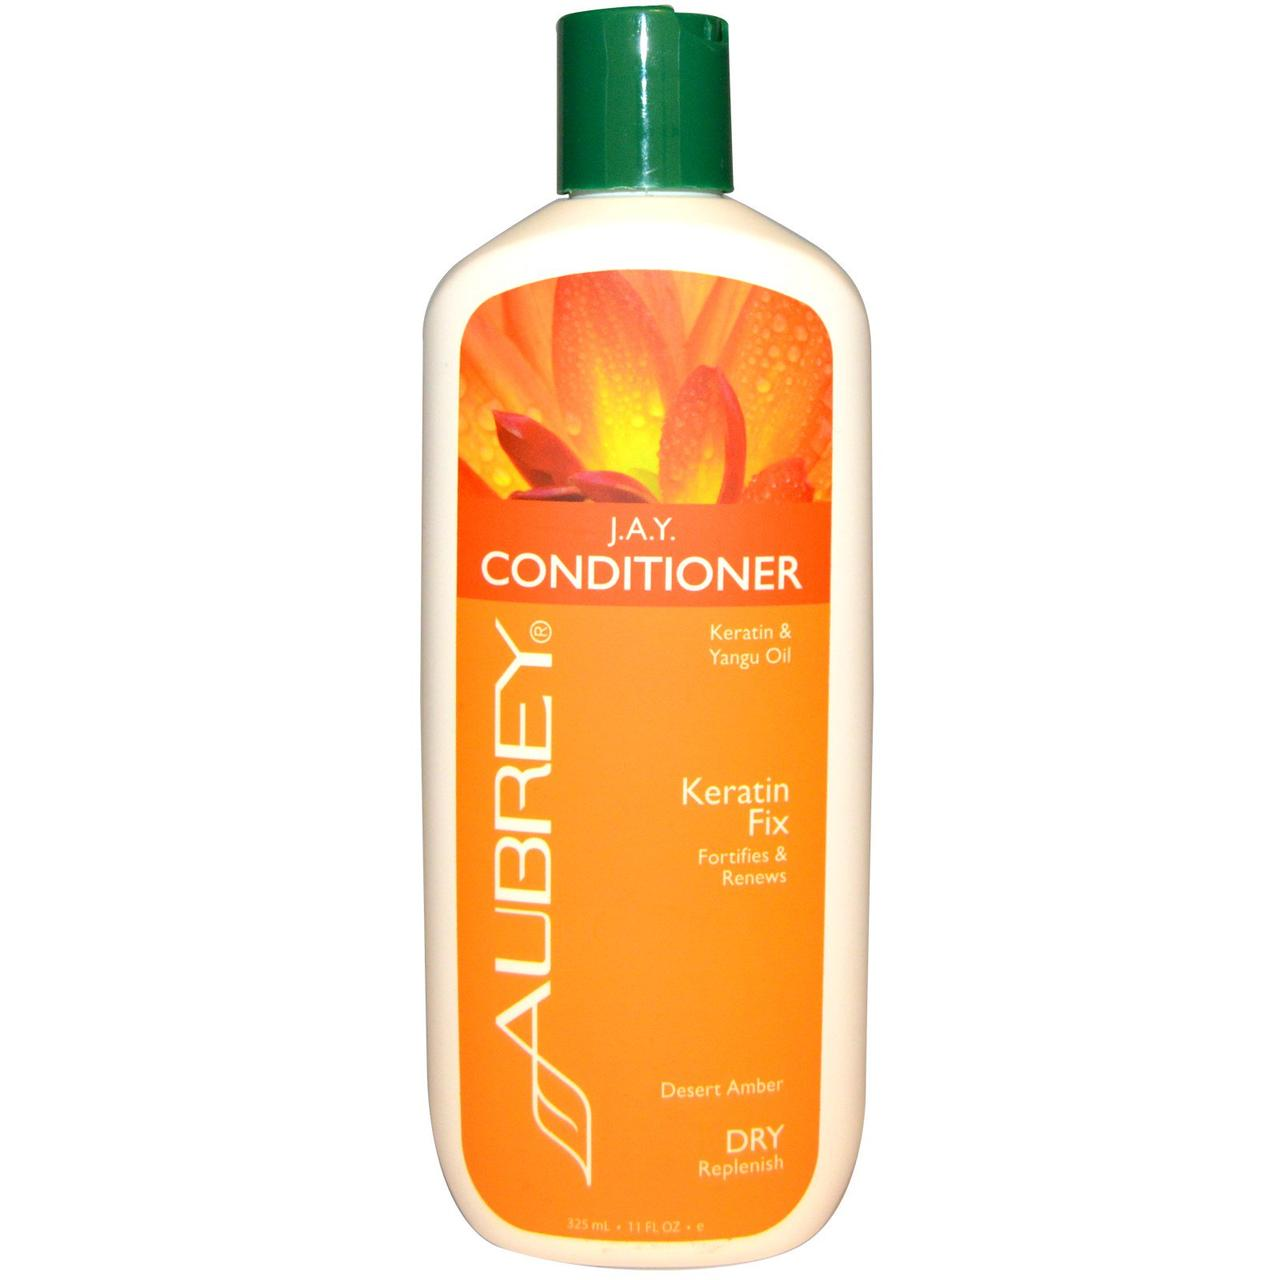 Aubrey Organics, J.A.Y. Conditioner, Dry Hair, Citrus Clove, 11 fl oz (325 ml)